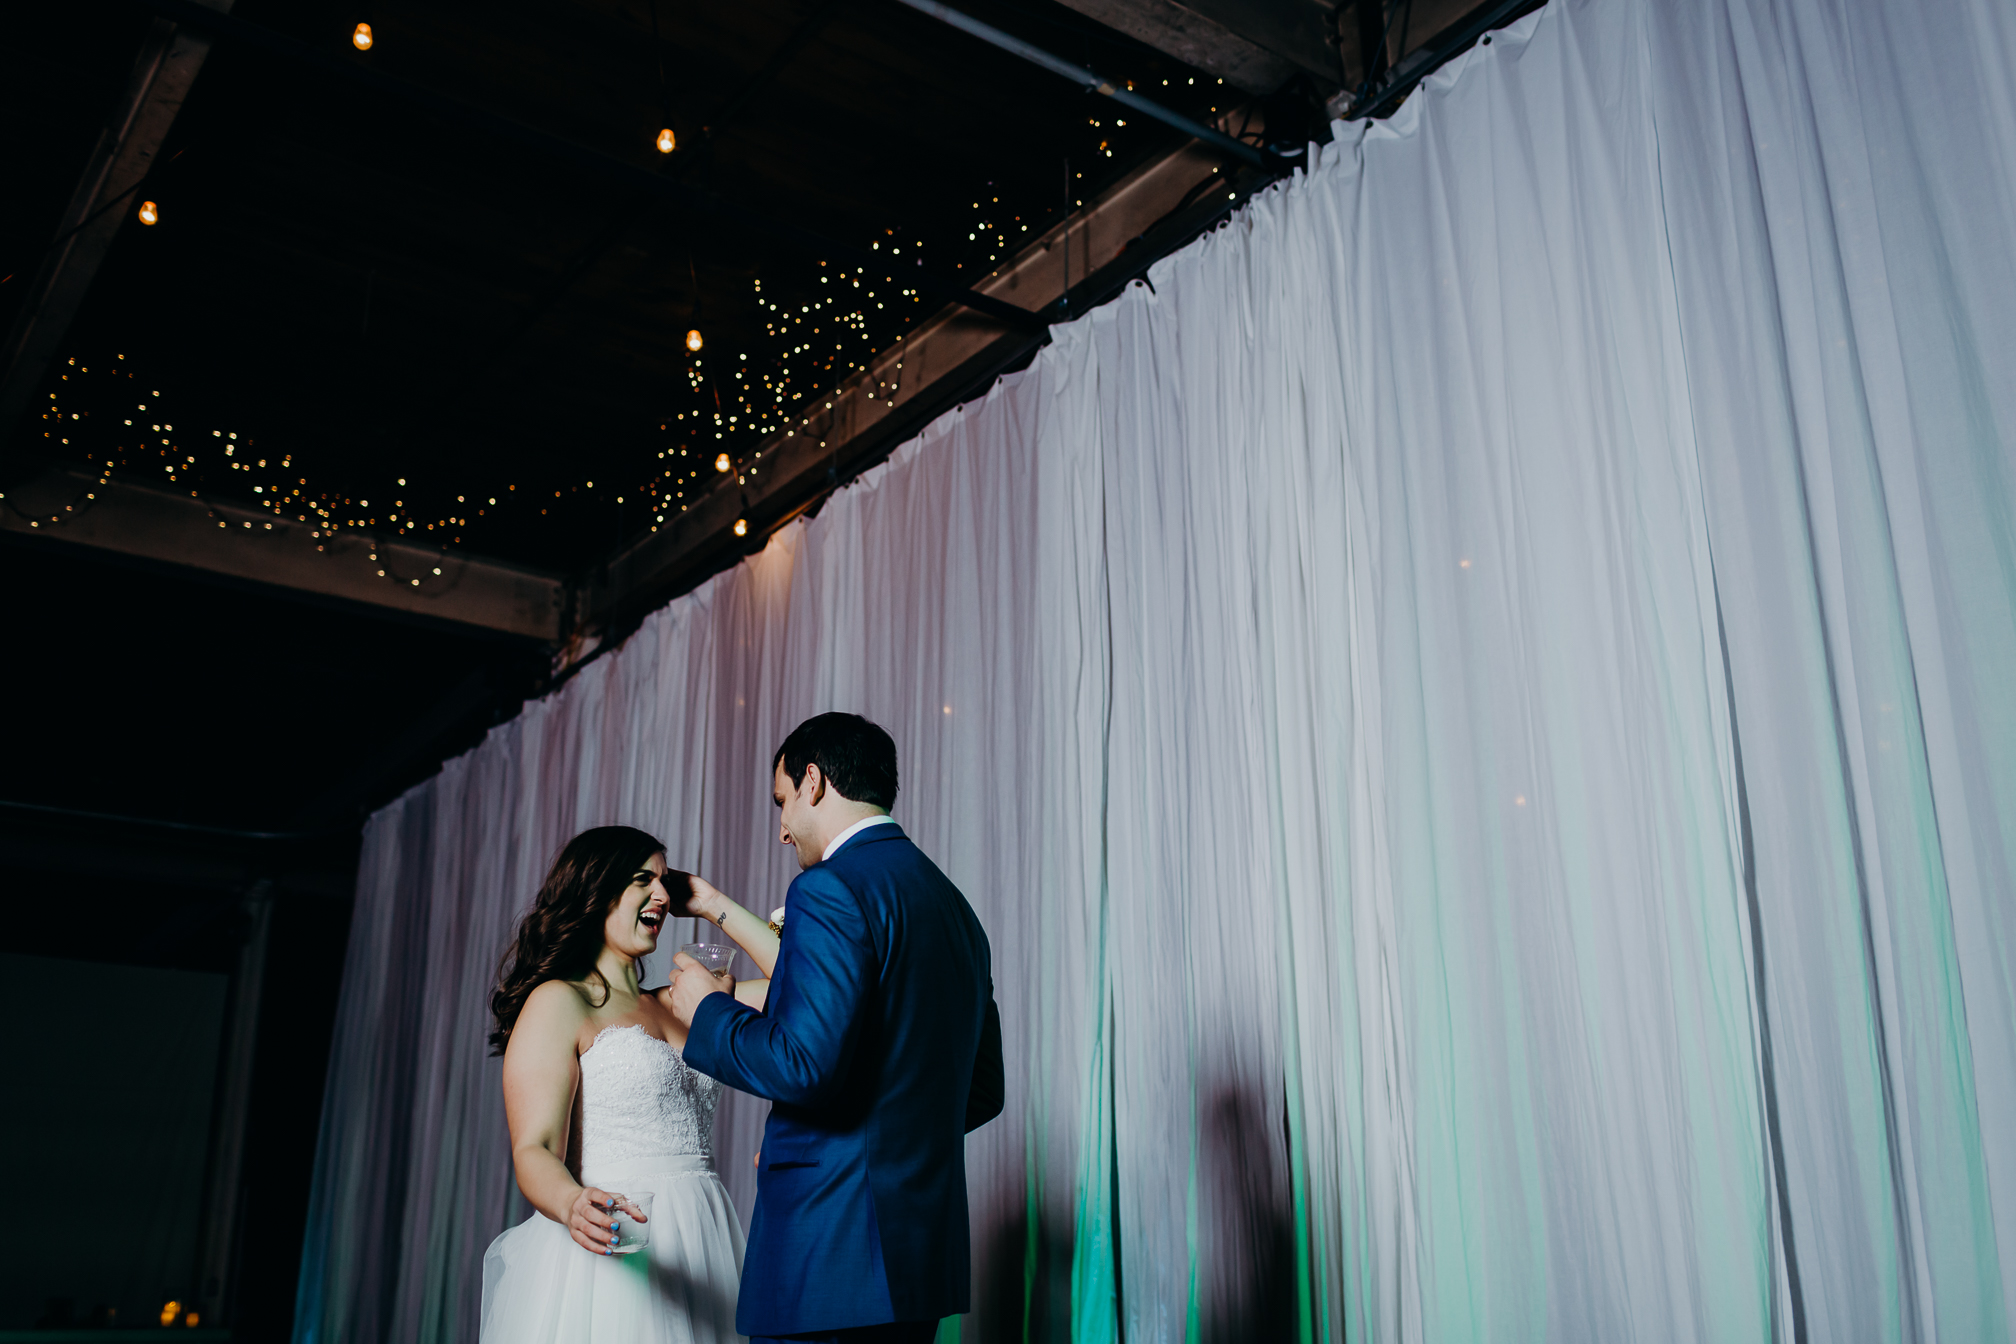 Gianna Keiko Atlanta NYC California Wedding Elopement Photographer_Sneak Peek-45.jpg